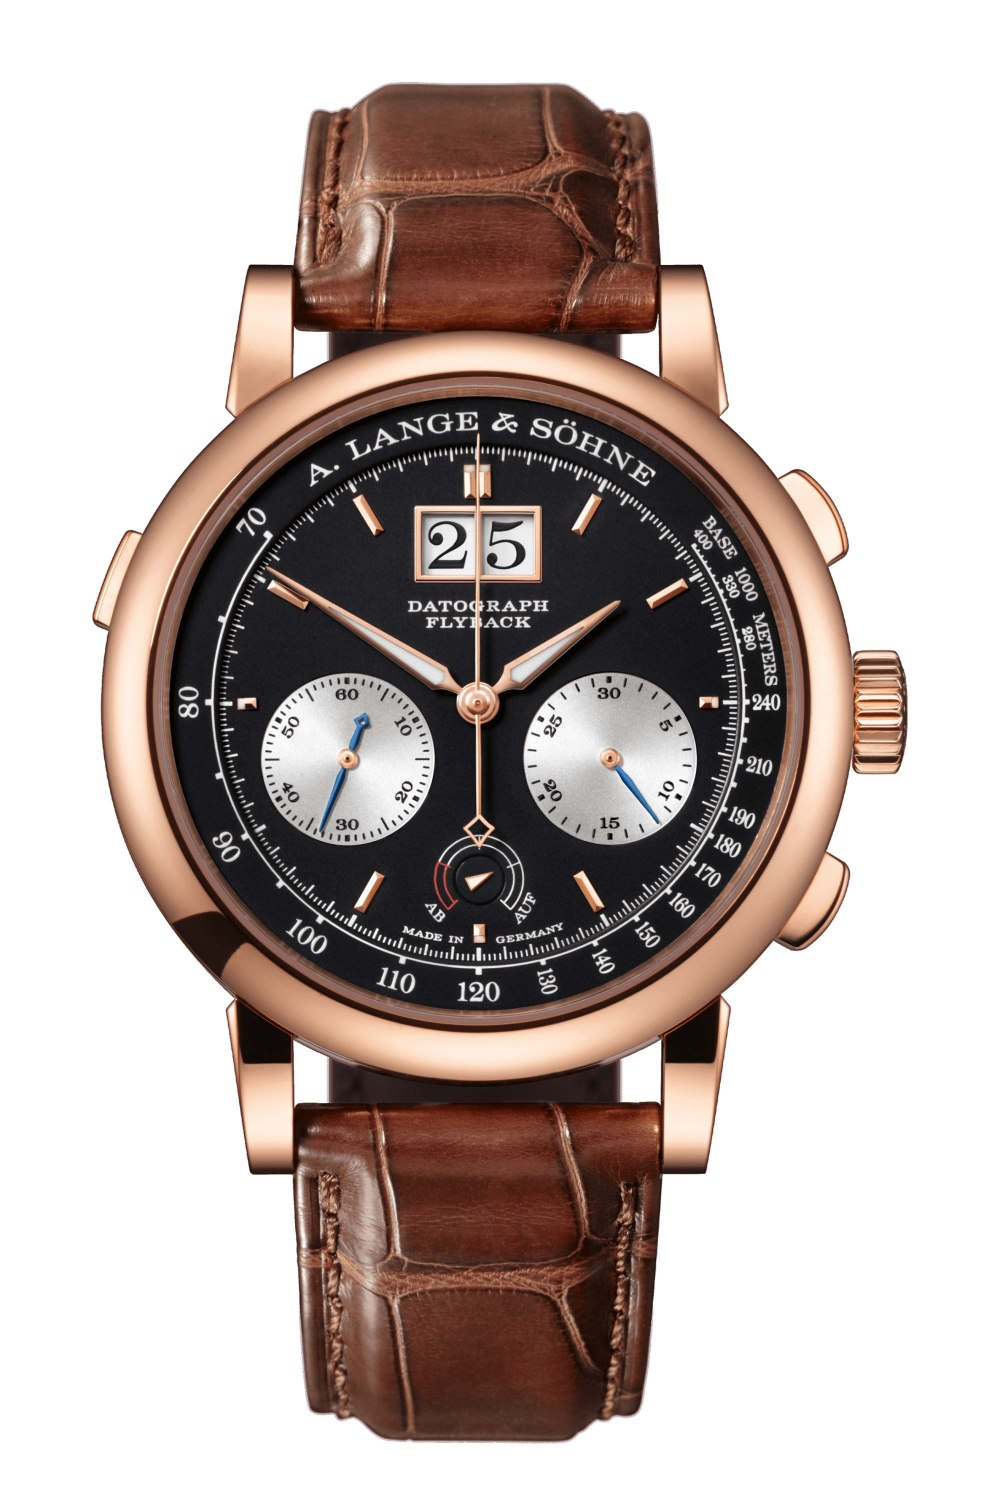 A.LANGE & SOHNE Datograph Up/Down 405.031